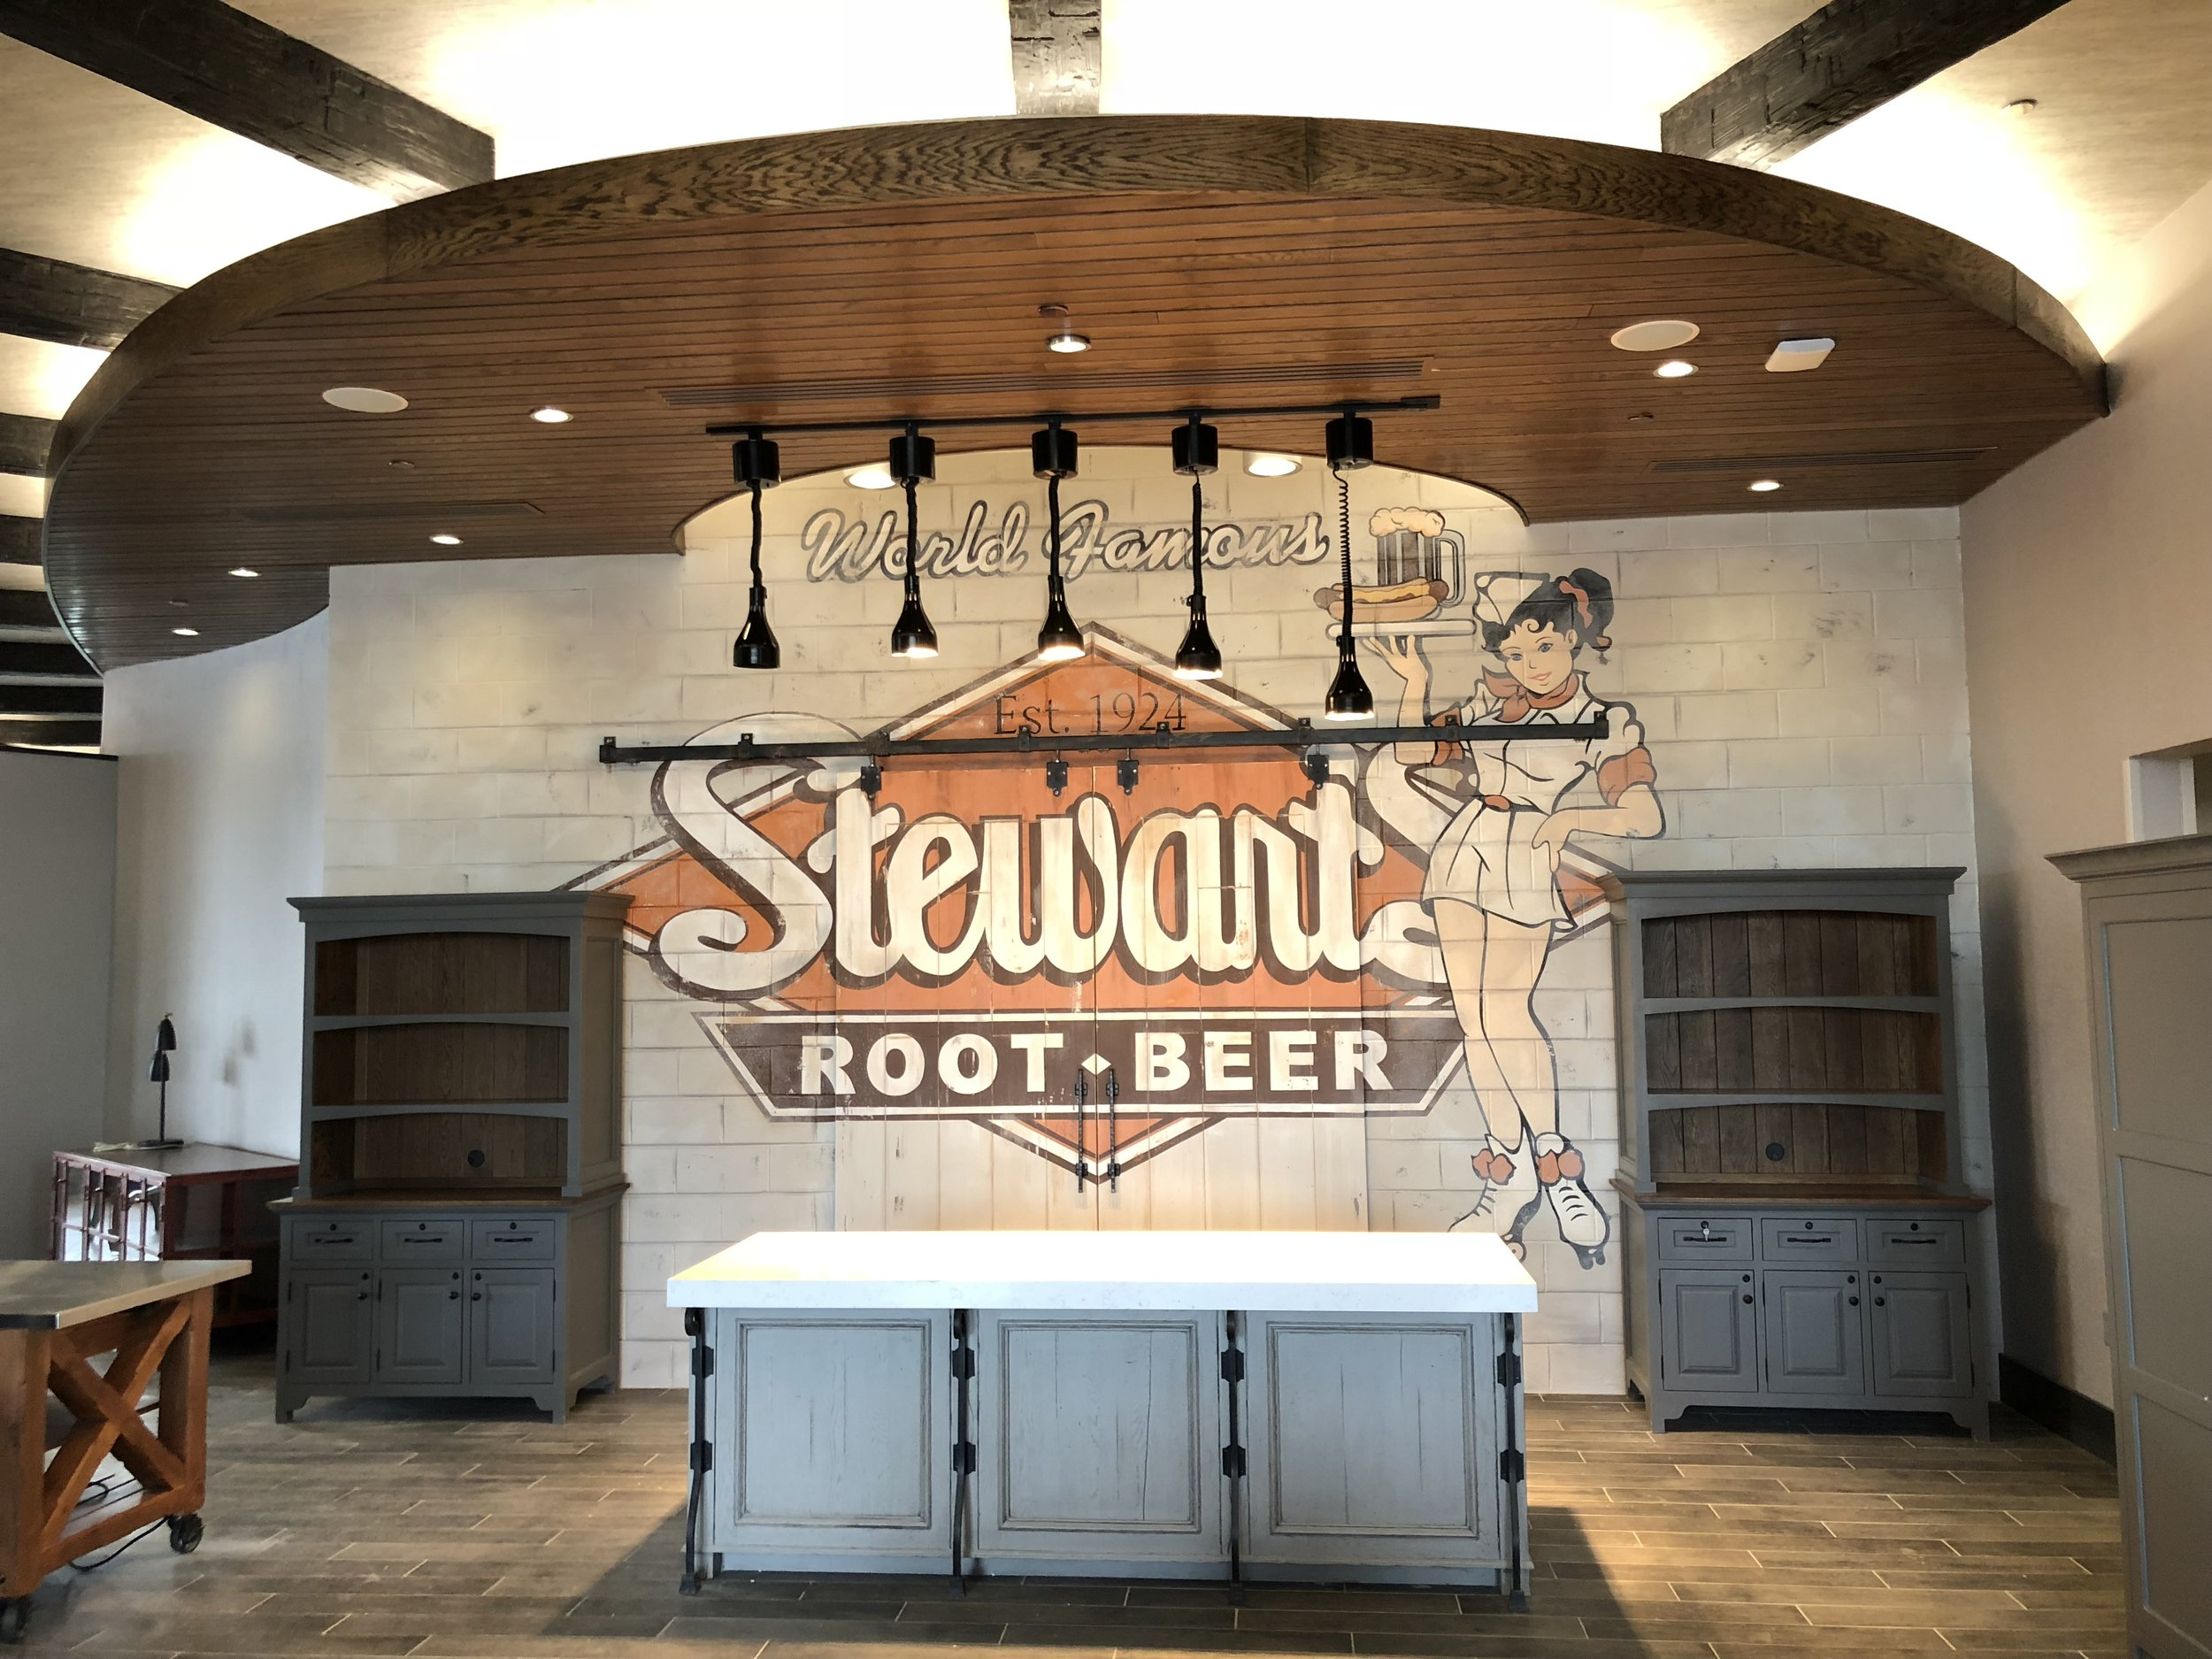 Car Hop Wall Mural Stewarts Root Beer